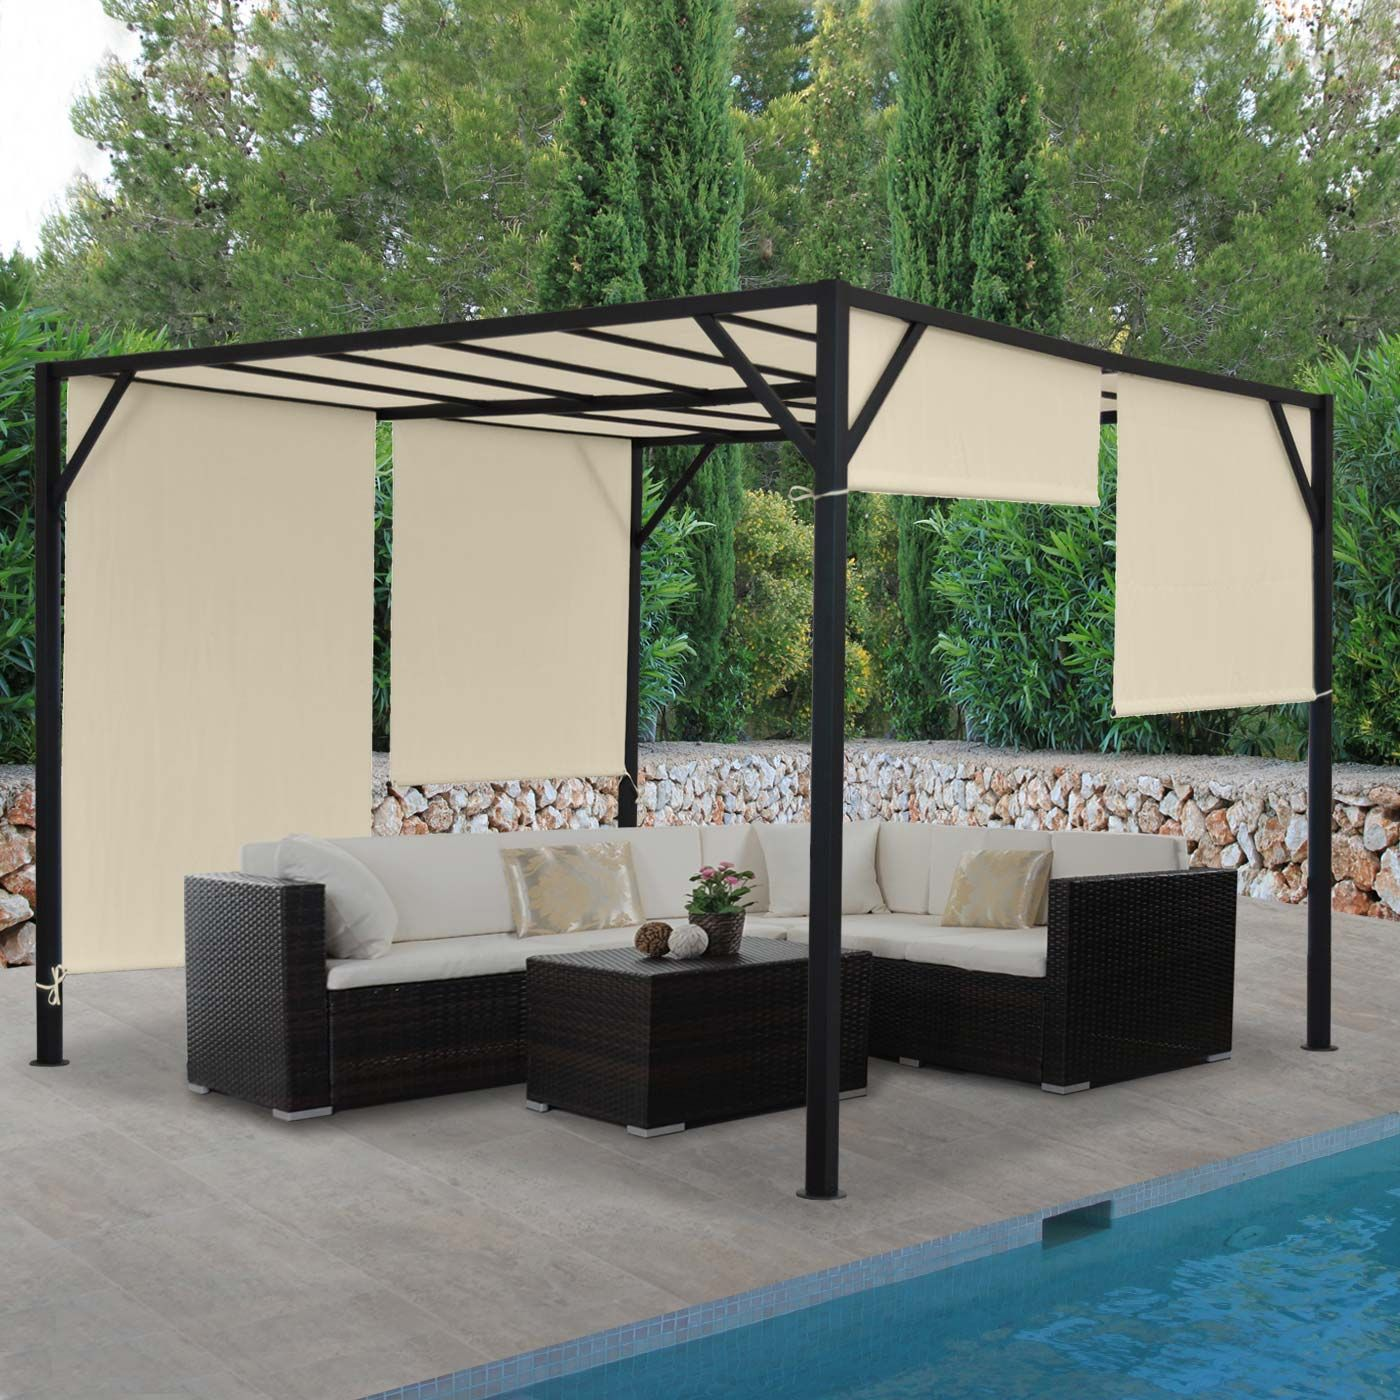 pergola baia garten pavillon terrassen berdachung stabiles 6cm stahl gestell schiebedach. Black Bedroom Furniture Sets. Home Design Ideas